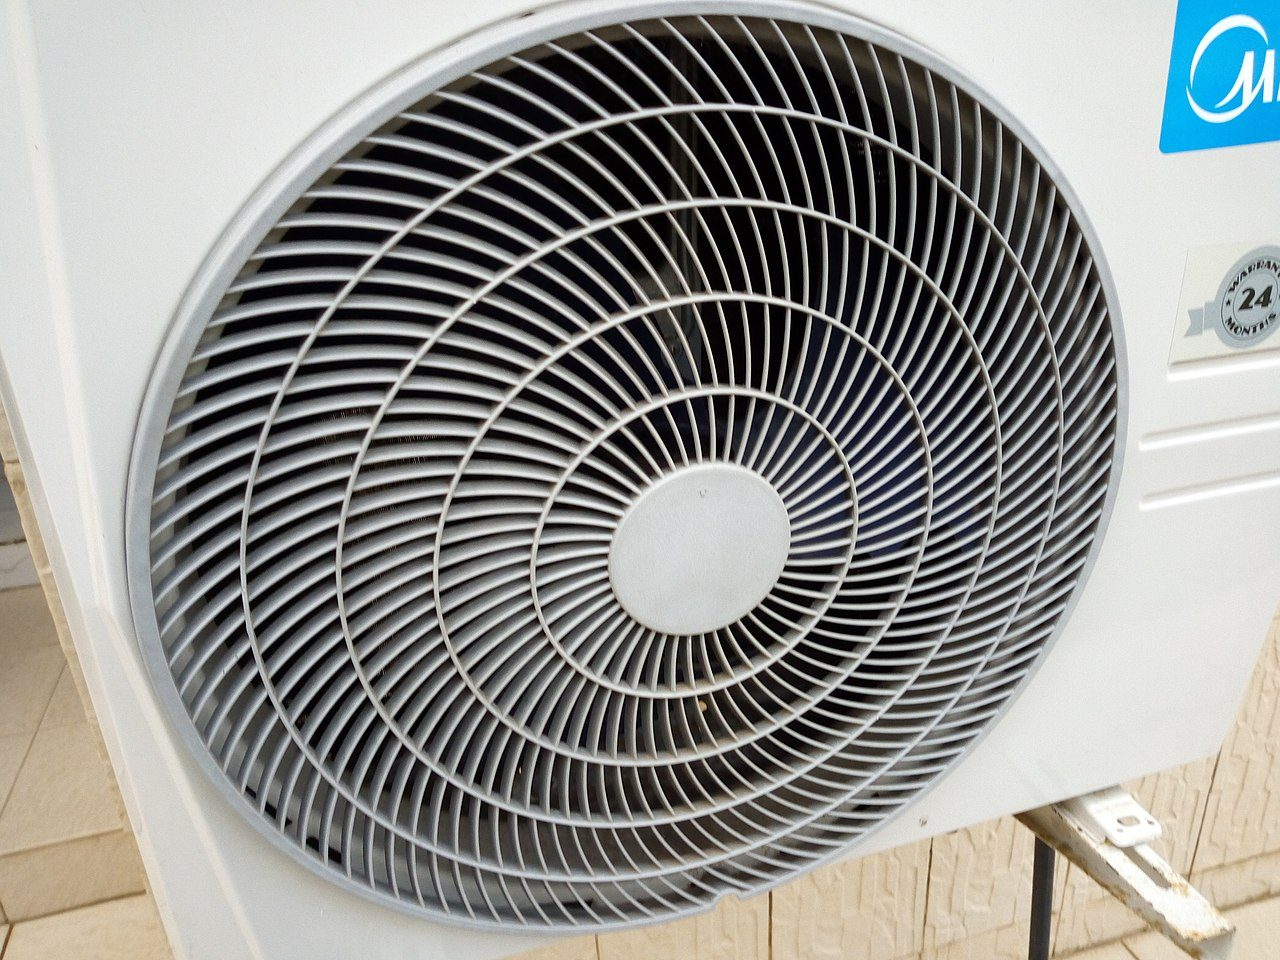 What Role Does Air Conditioning Play in the Spread of COVID-19?